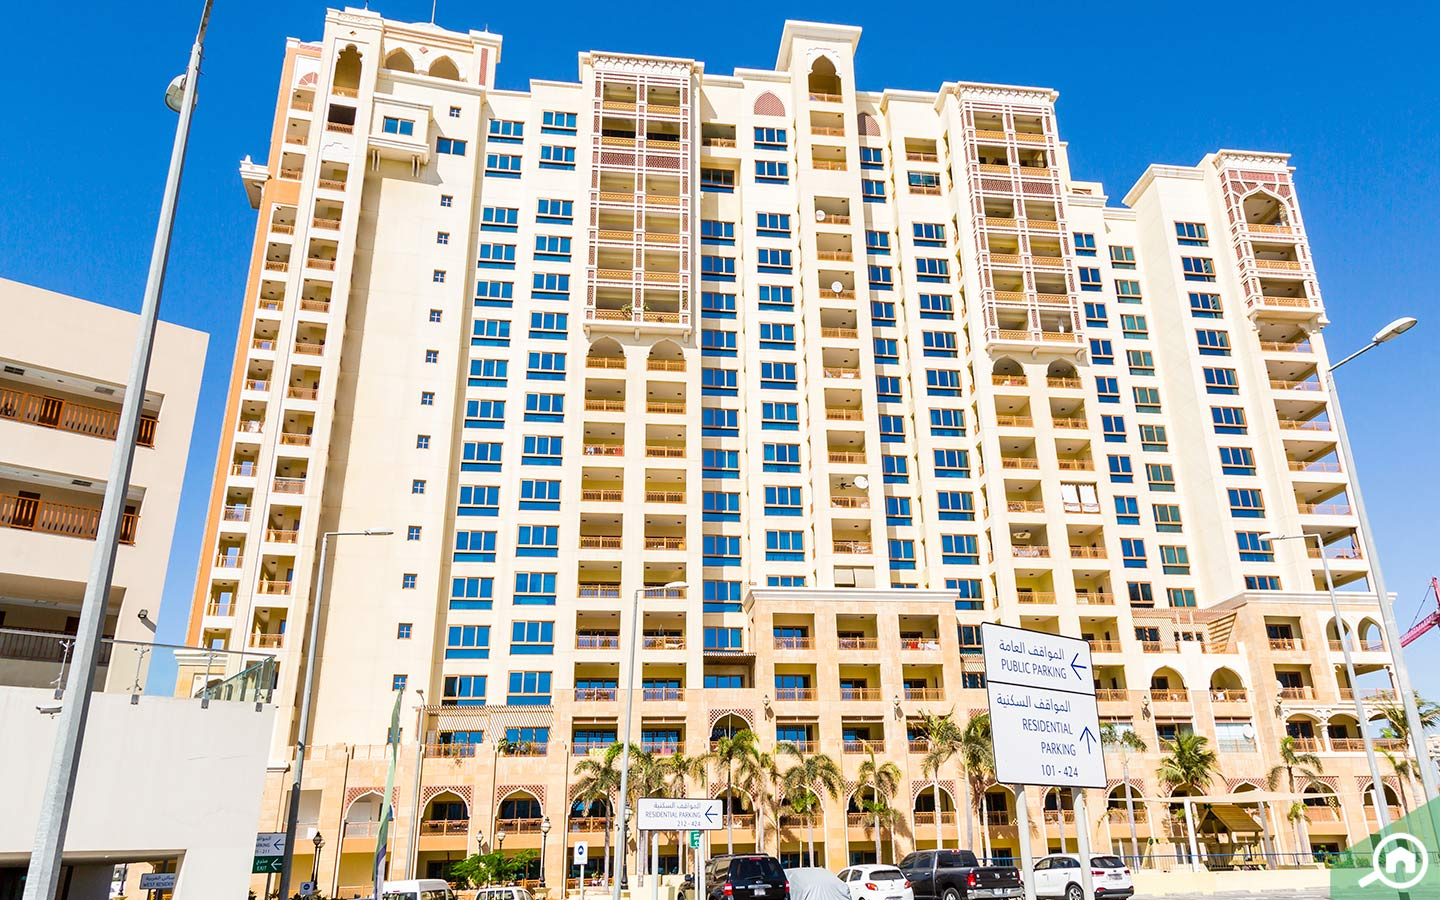 Flats for rent in Palm Jumeirah